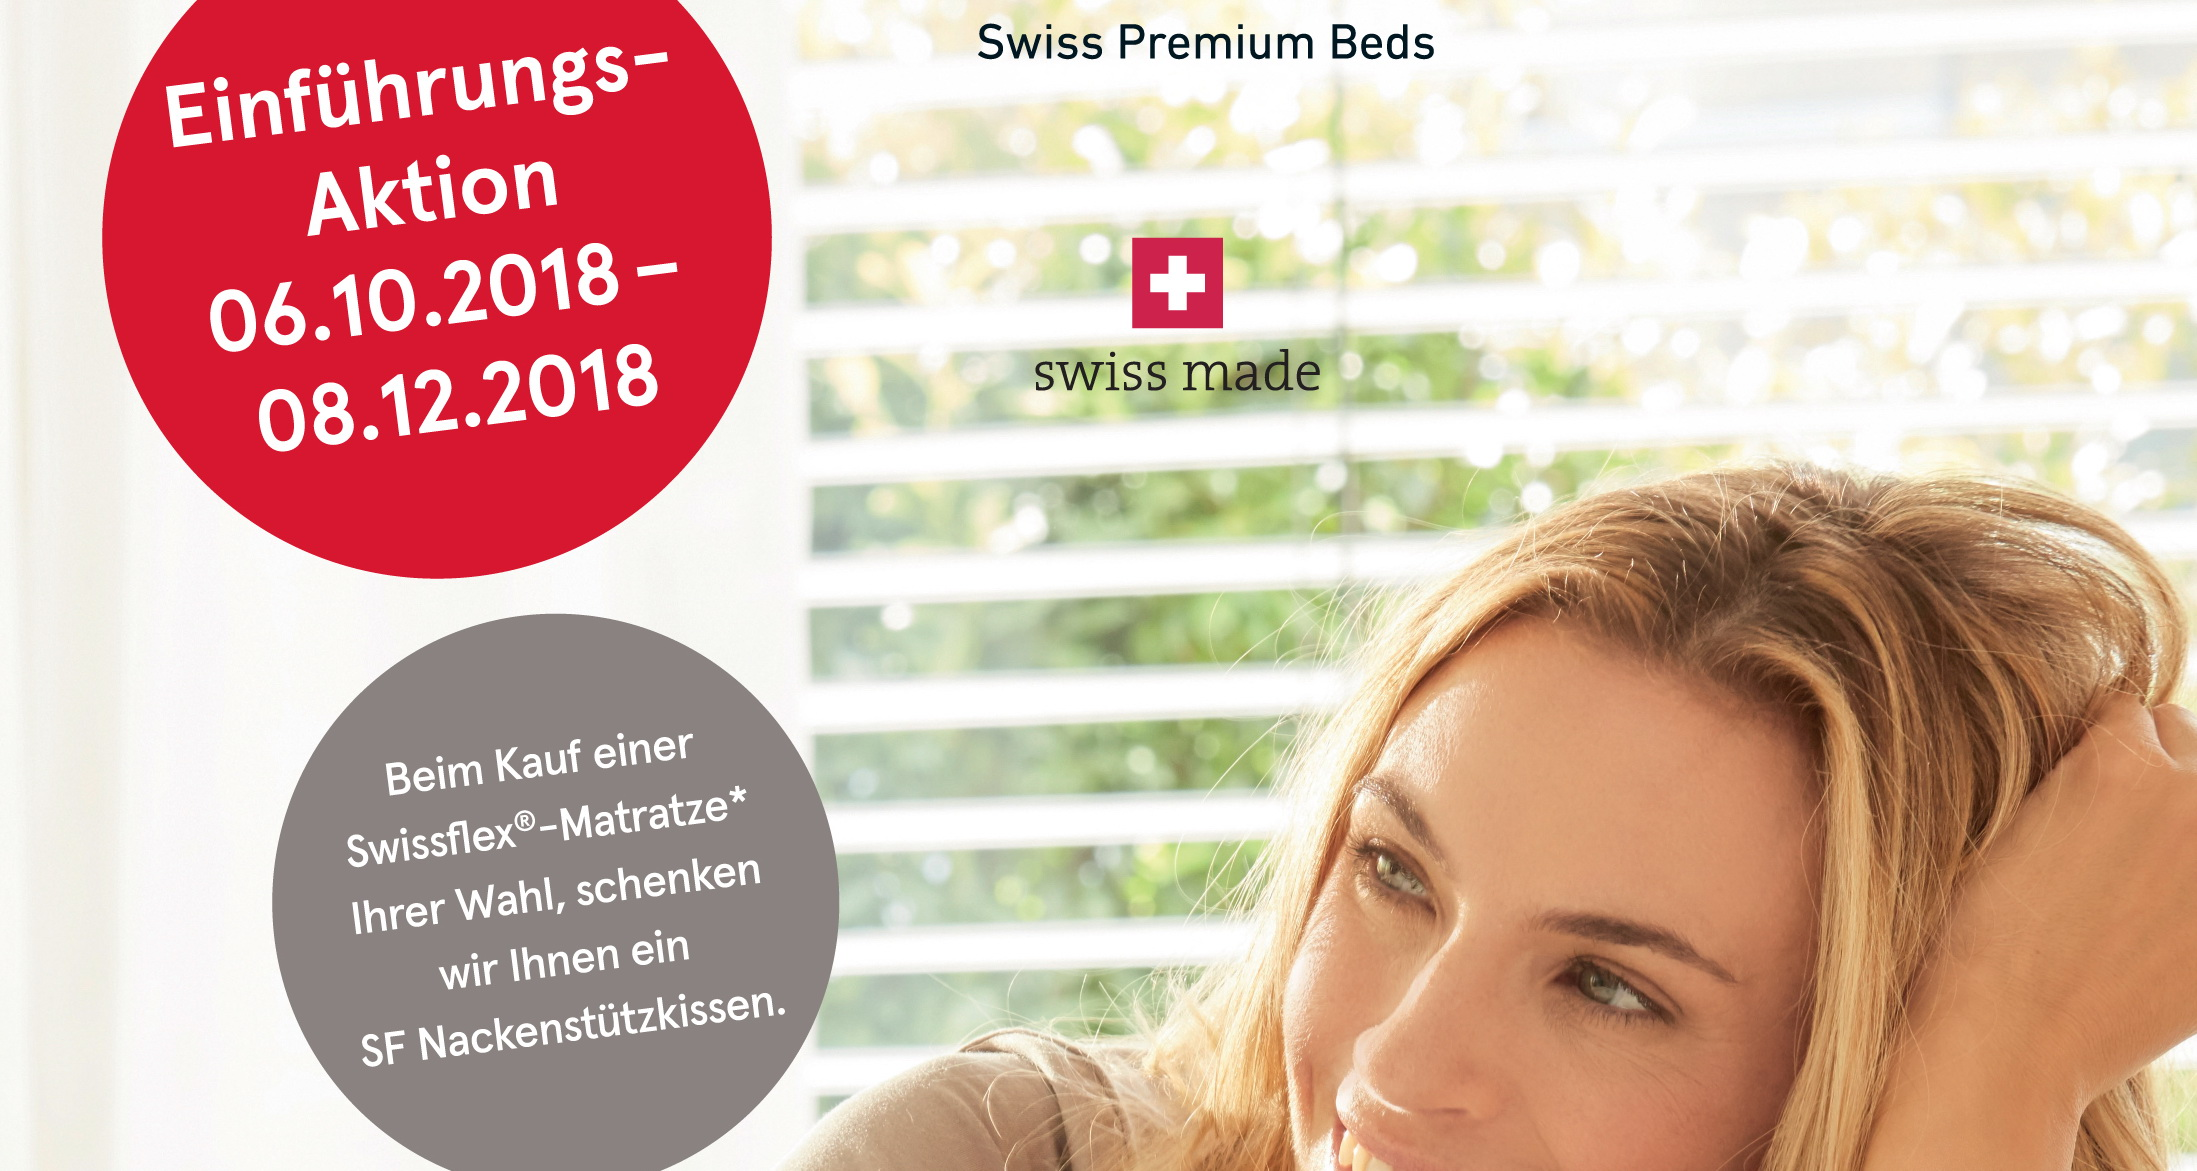 Swissflex Hybrind Aktion Start 2